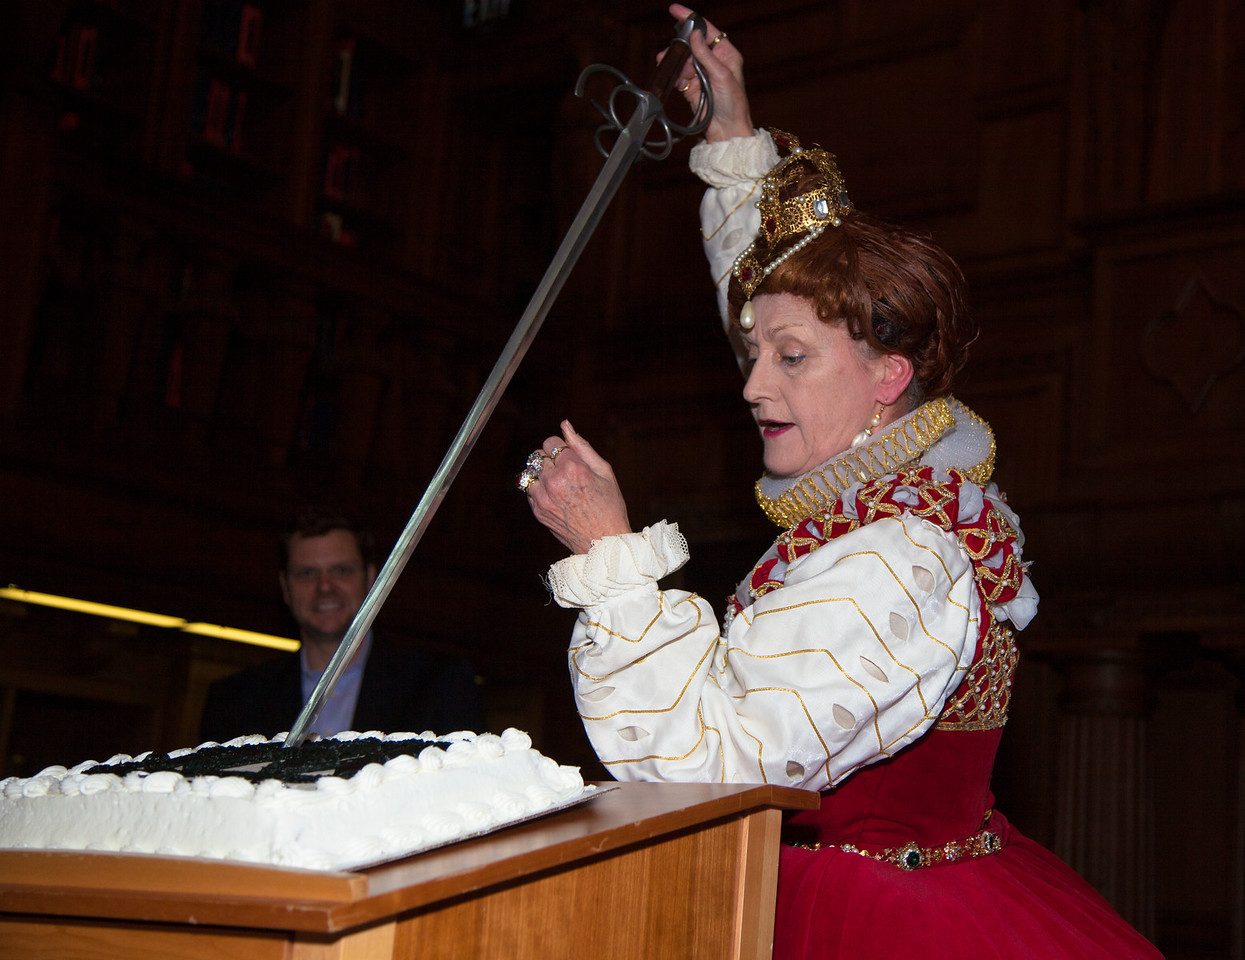 Queen Elizabeth I portrayed by Penelope Rahming cuts Shakespeare's birthday cake at the Folger Shakespeare Library in Washington DC.